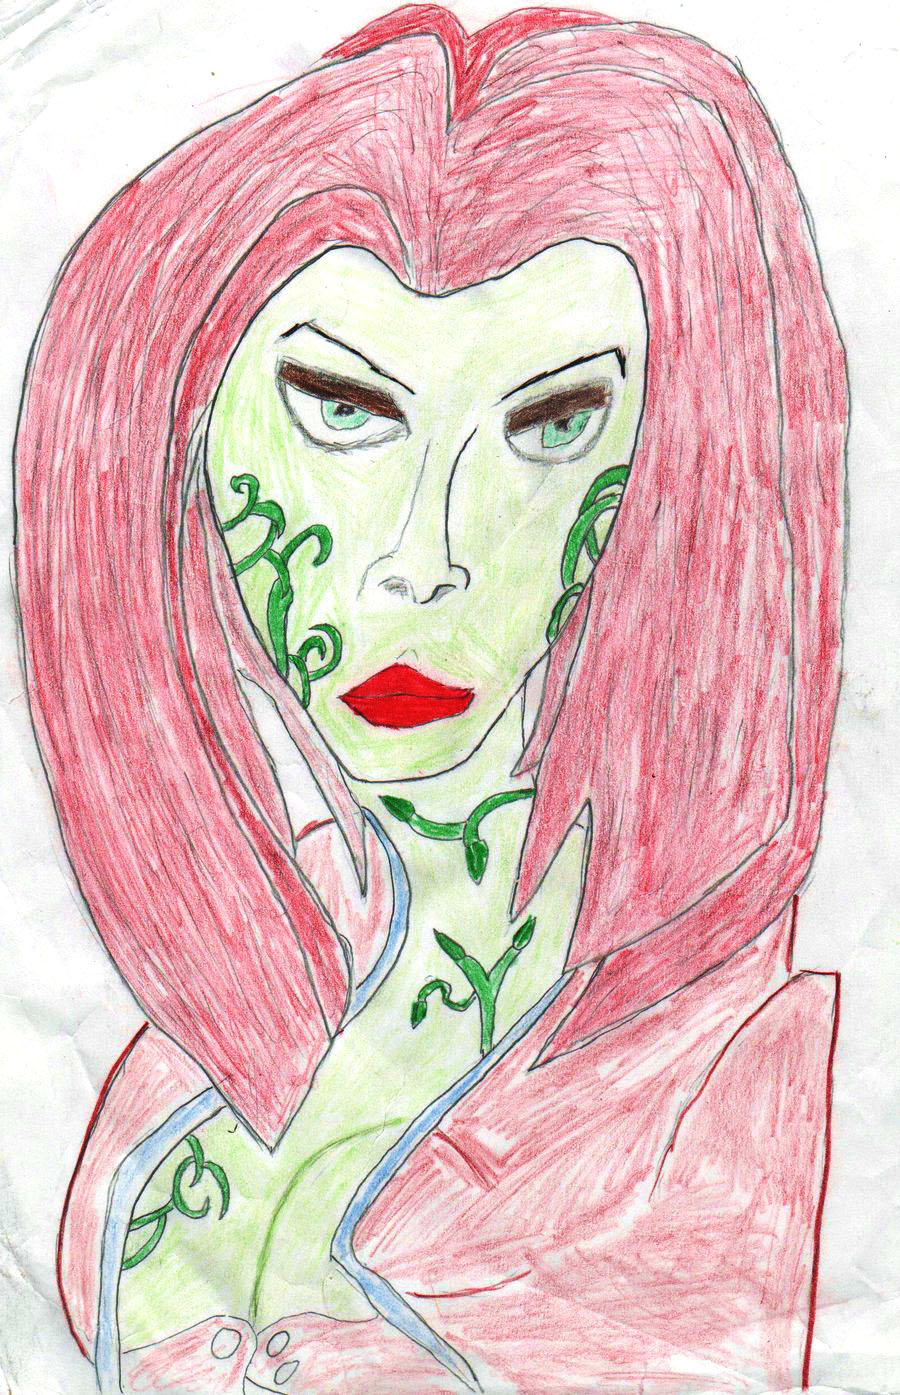 Poison Ivy from batman comics